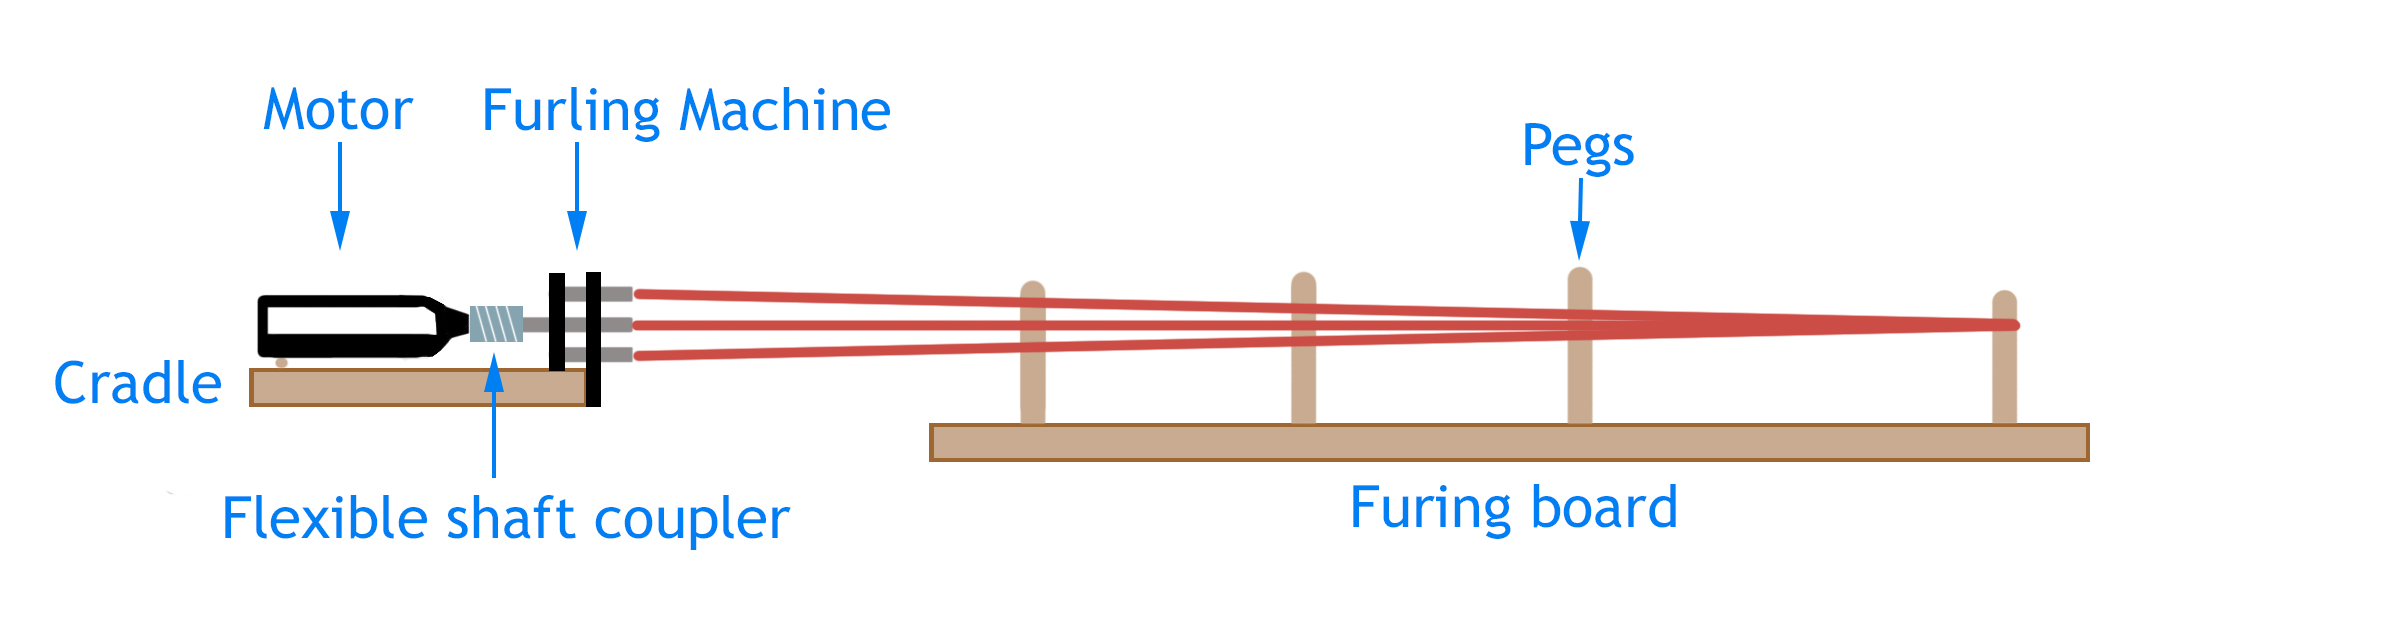 furling-machine-cradle.jpg